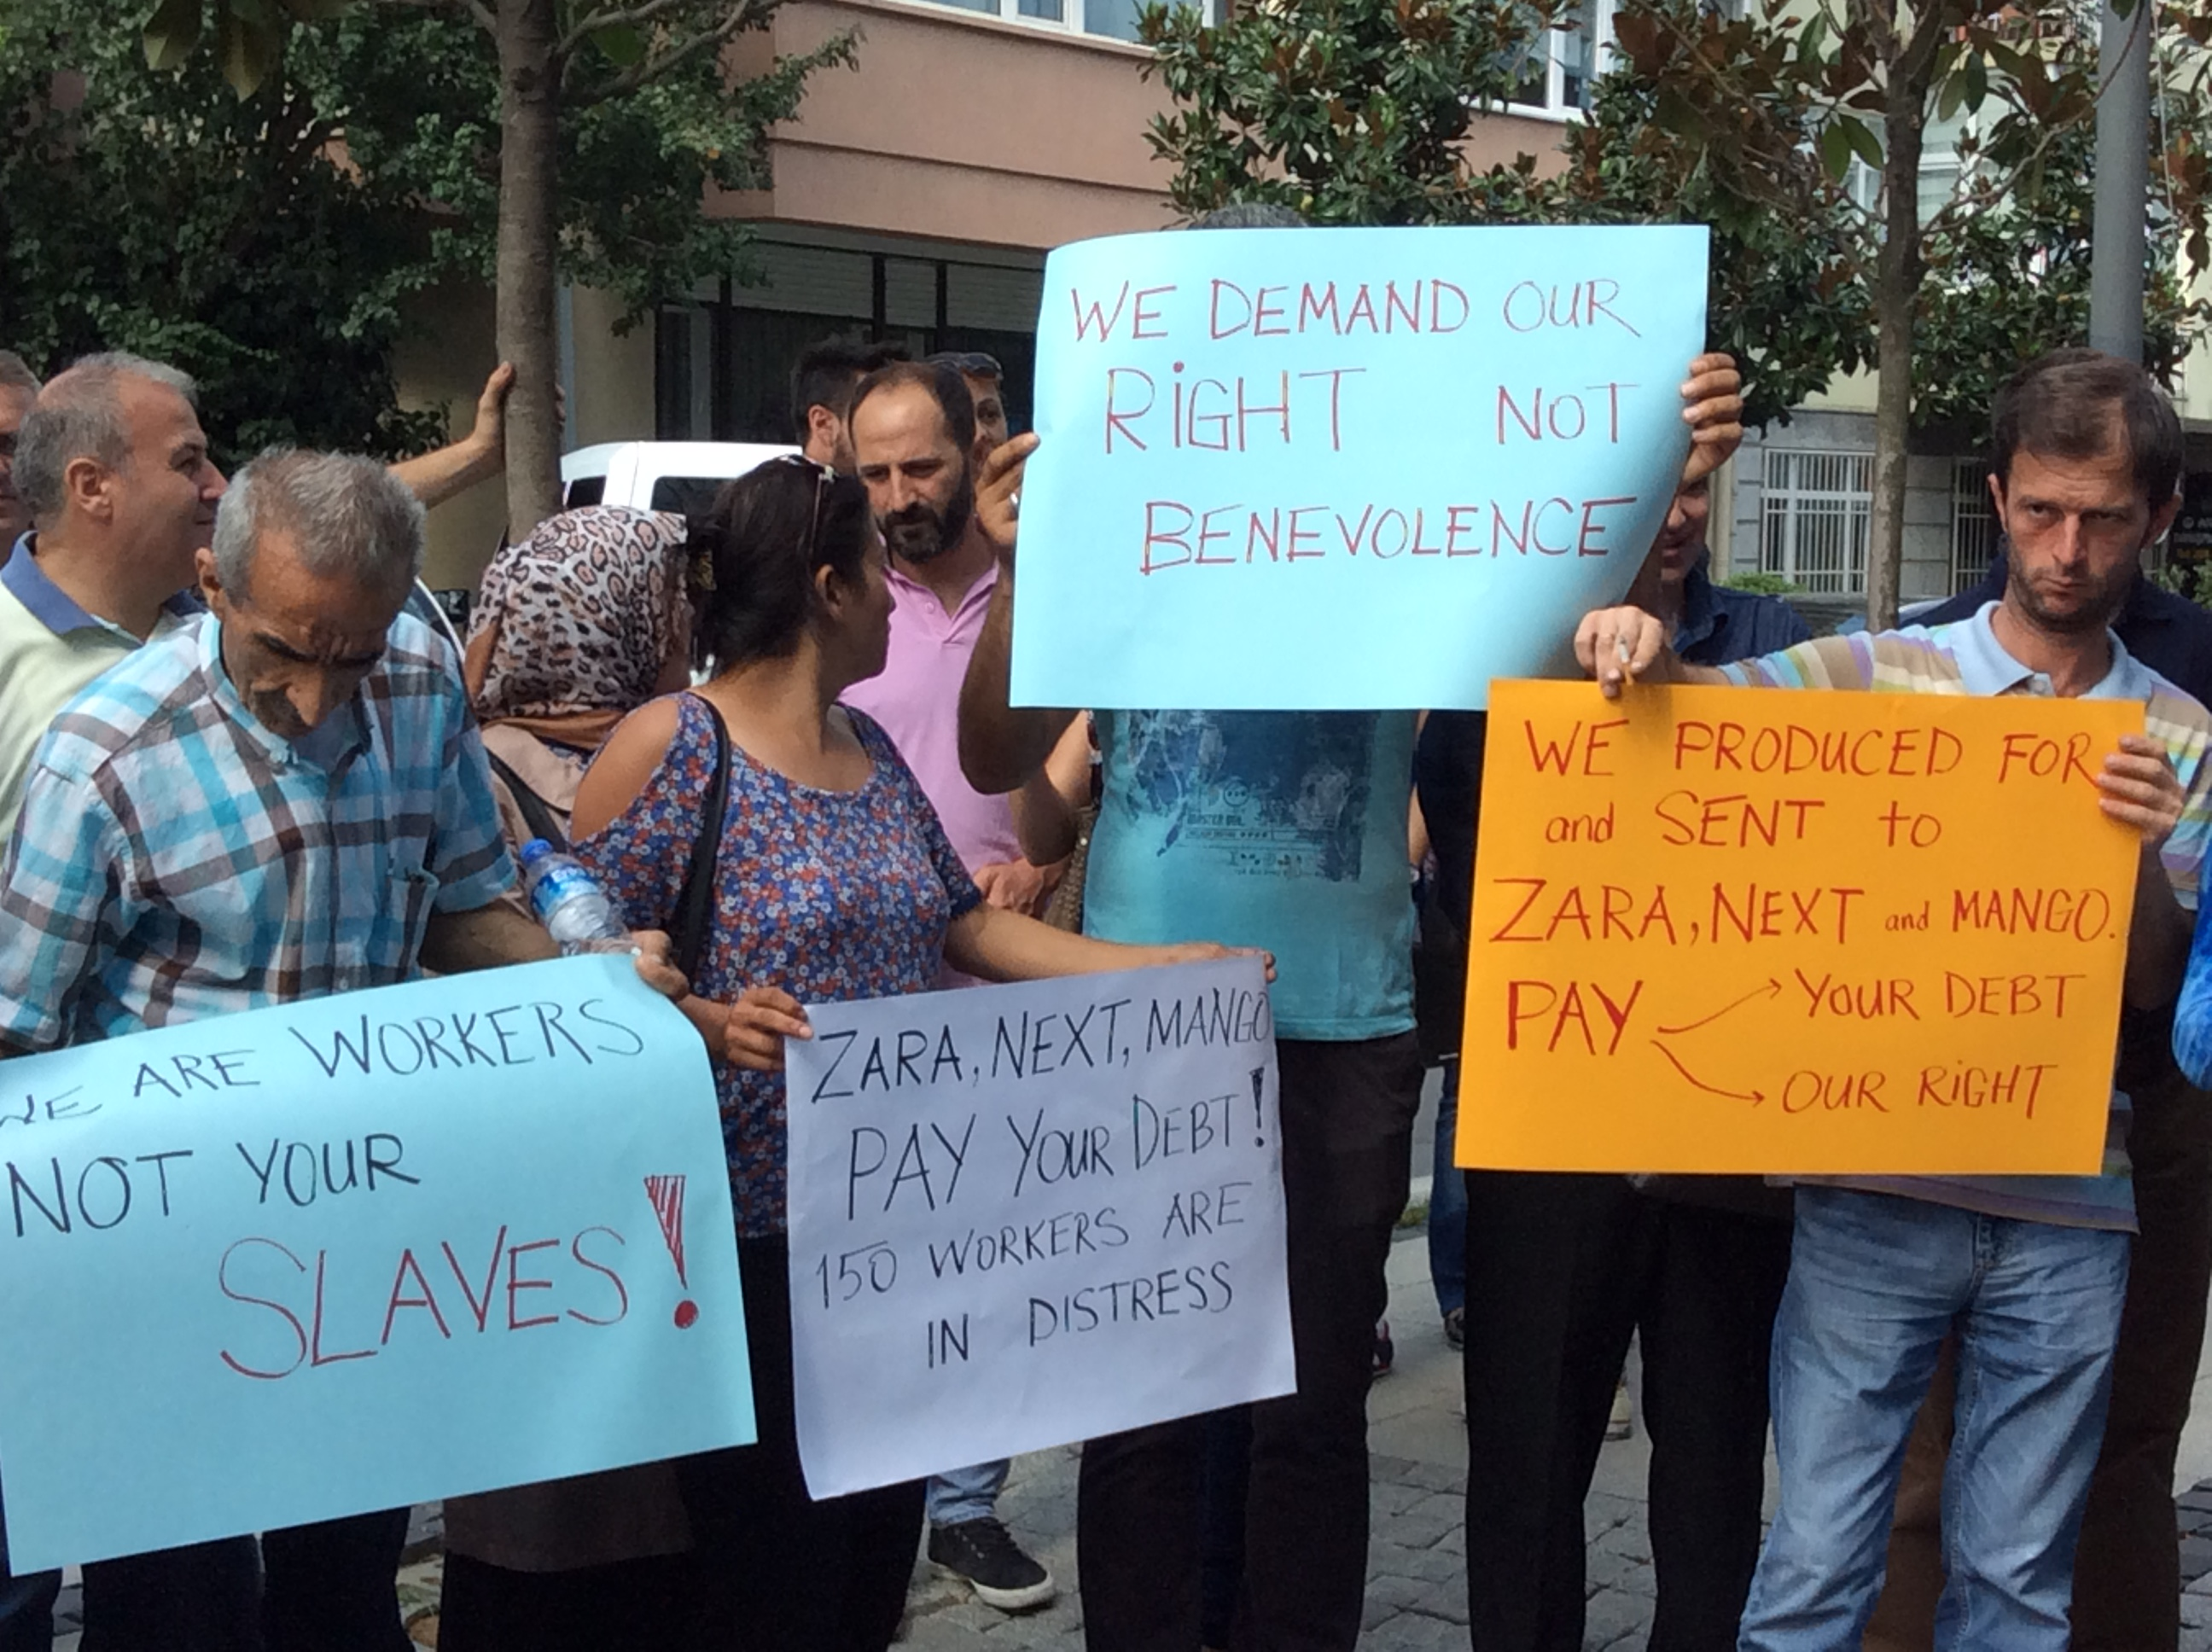 Zara, Next, Mango Slammed for Leaving Workers Without Wages in Turkish Factory